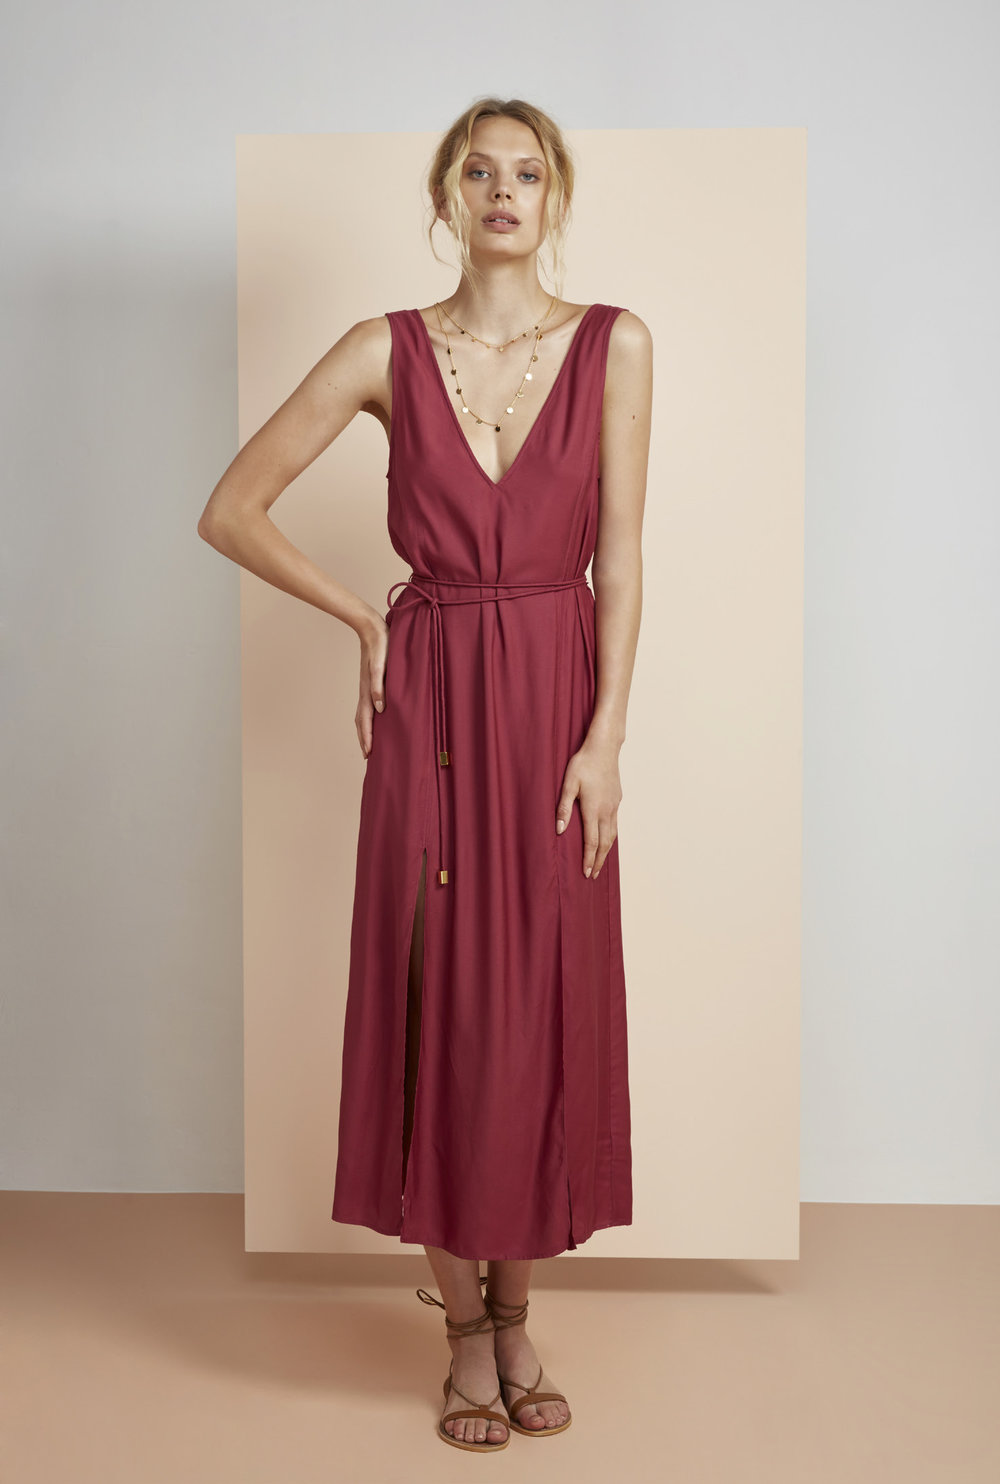 FINDERS Renzo Dress